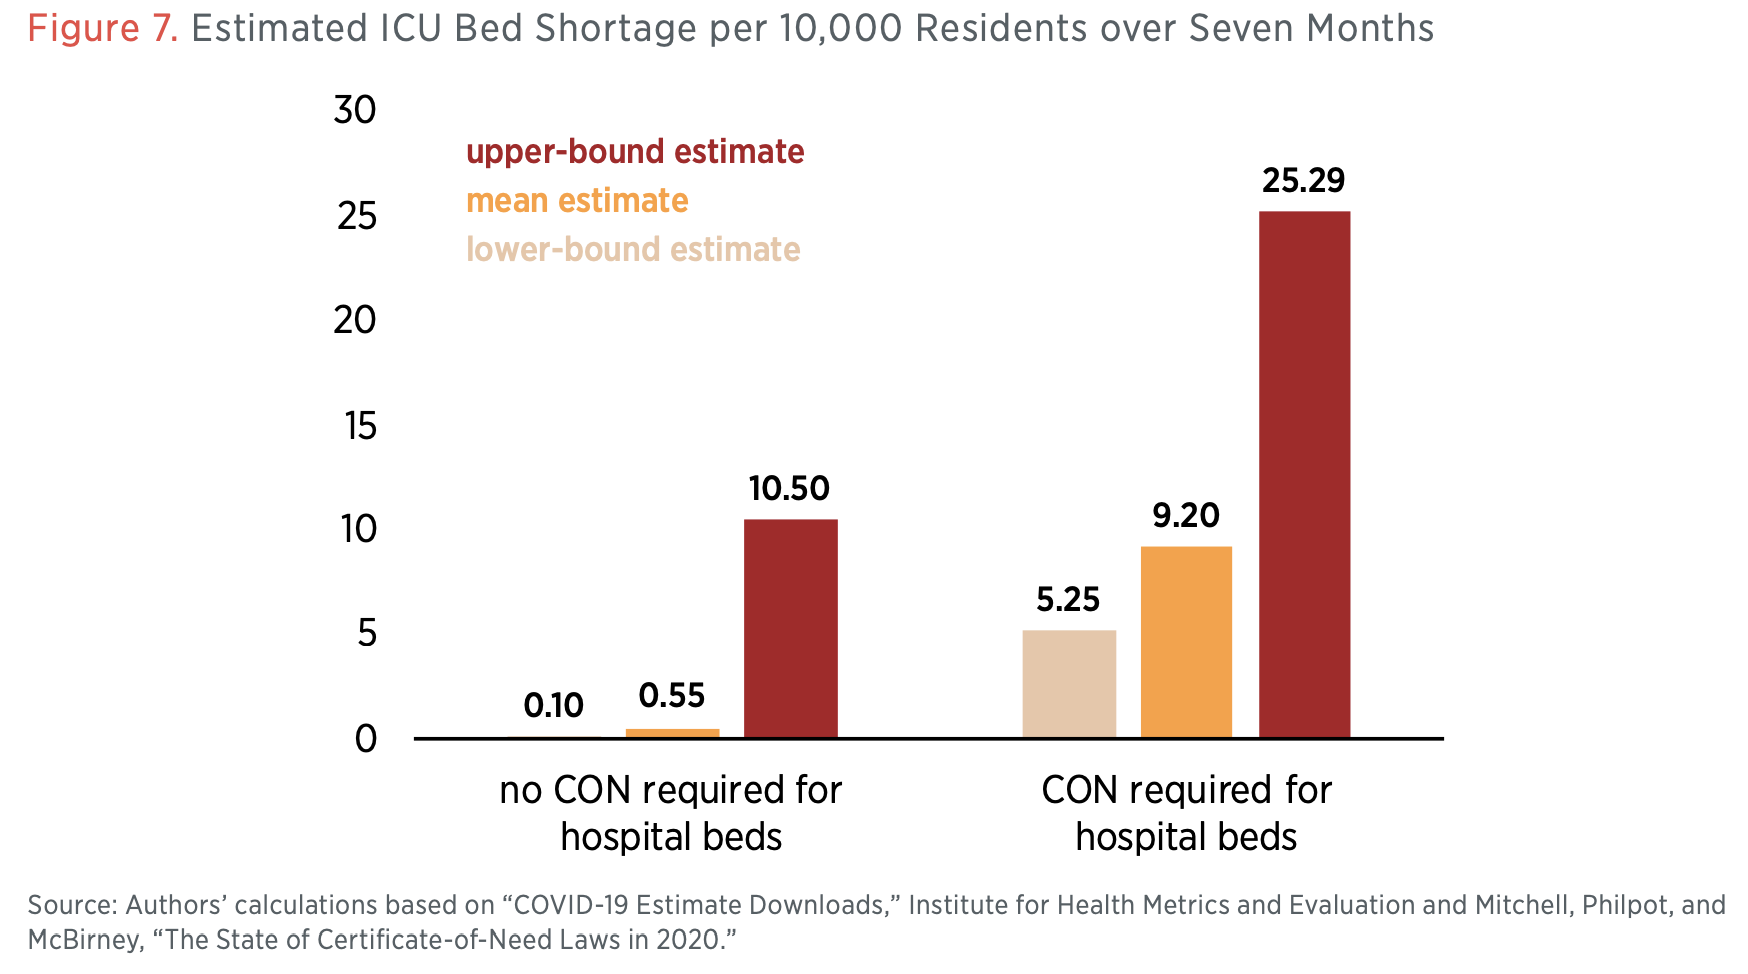 Figure 7. Estimated ICU Bed Shortage per 10,000 Residents over Seven Months